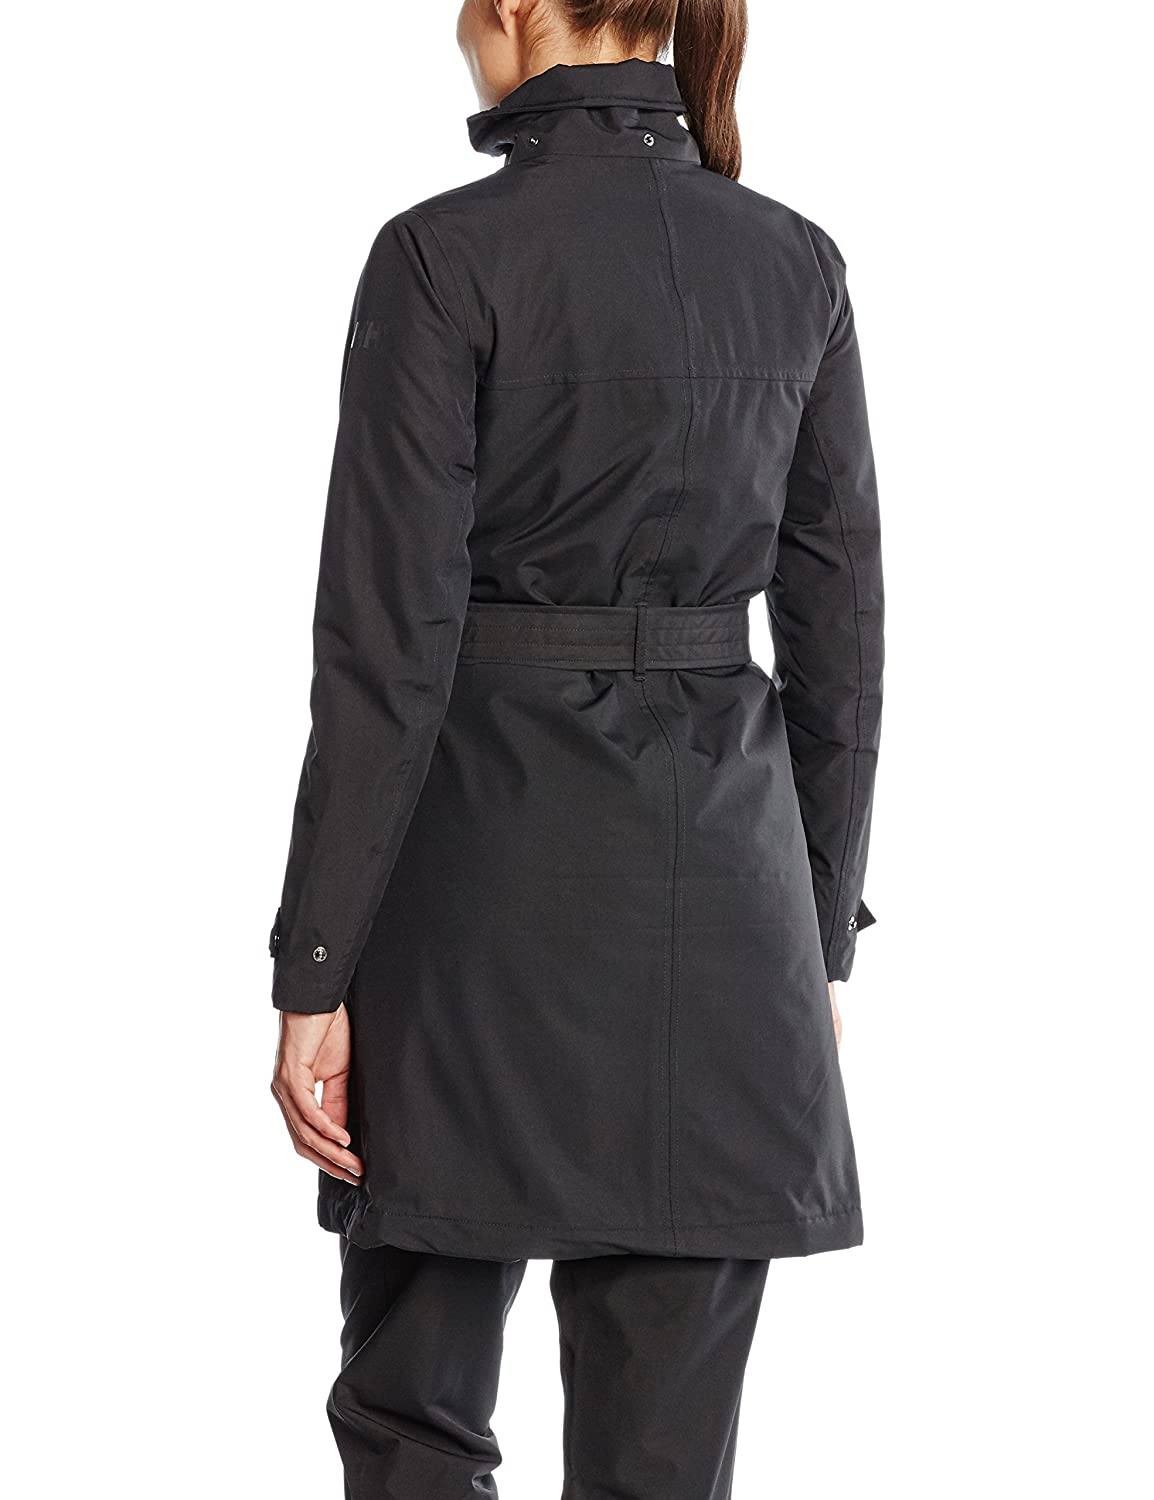 a69d5a93cf4 Helly Hansen Women s Welsey Trench Insulated Waterproof Jacket   Amazon.co.uk  Sports   Outdoors